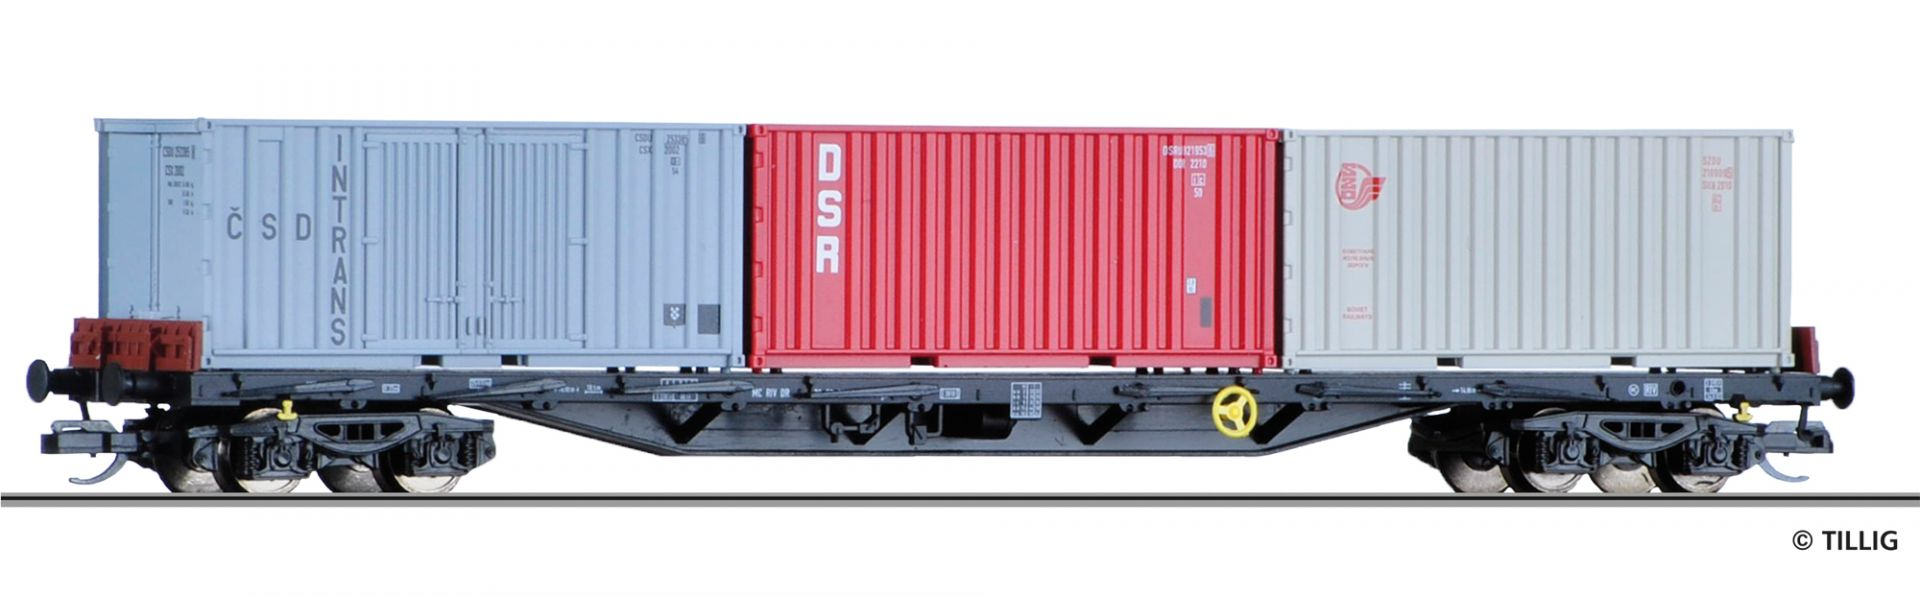 18127 | Containertragwagen DR